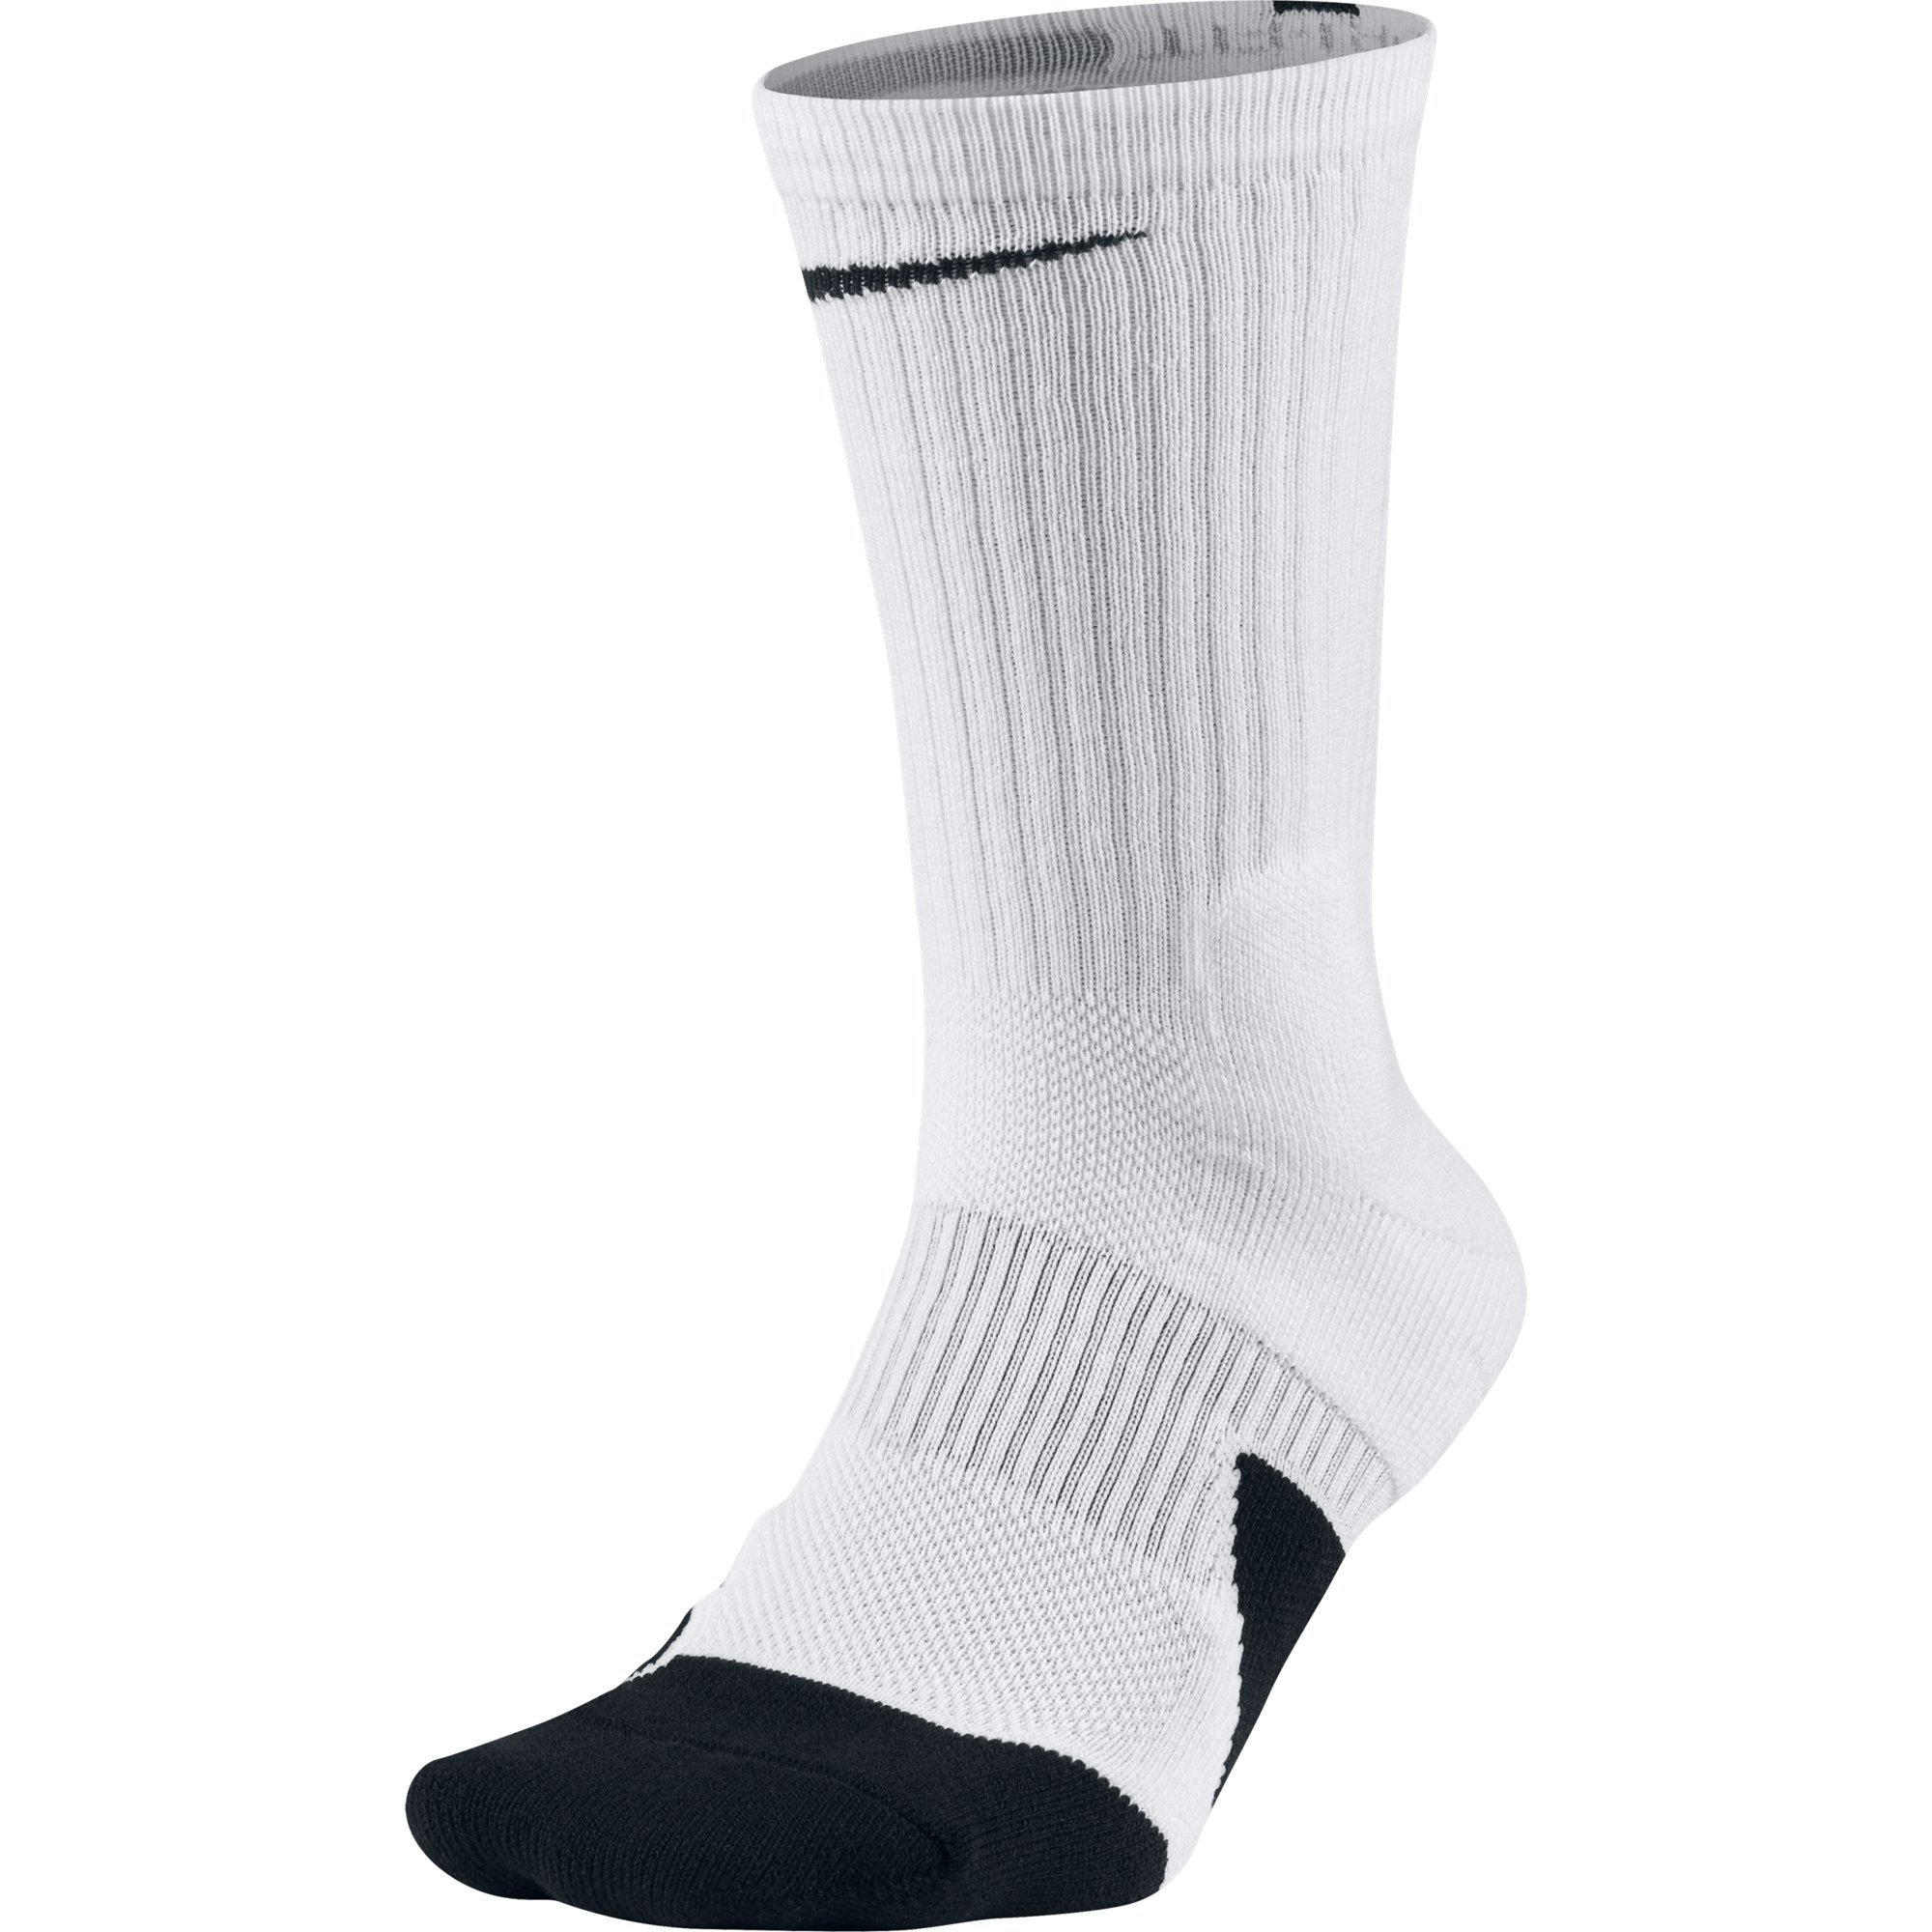 NIKE Unisex Dry Elite 1.5 Crew Basketball Socks (1 Pair), White/Black/Black, Medium by Nike